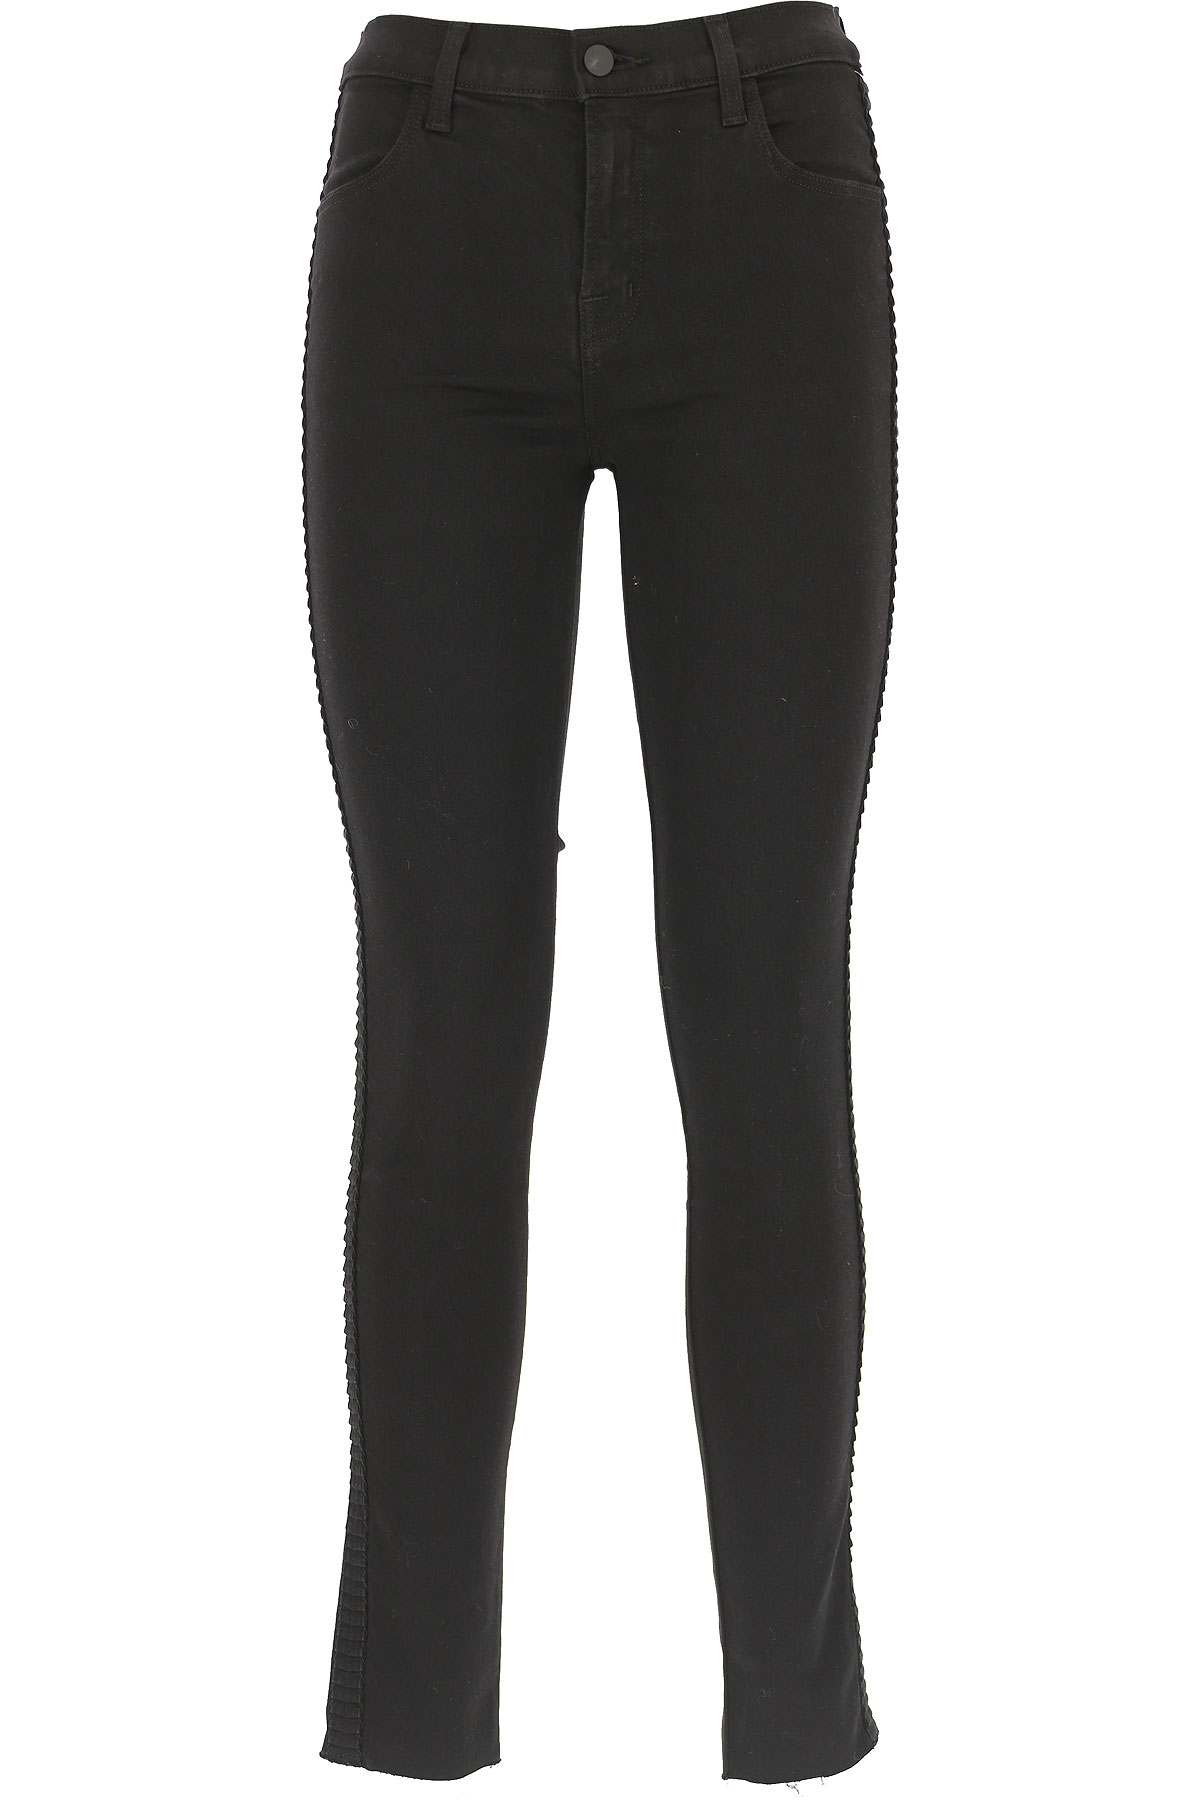 Image of J Brand Jeans, Black, Cotton, 2017, 24 25 26 27 28 29